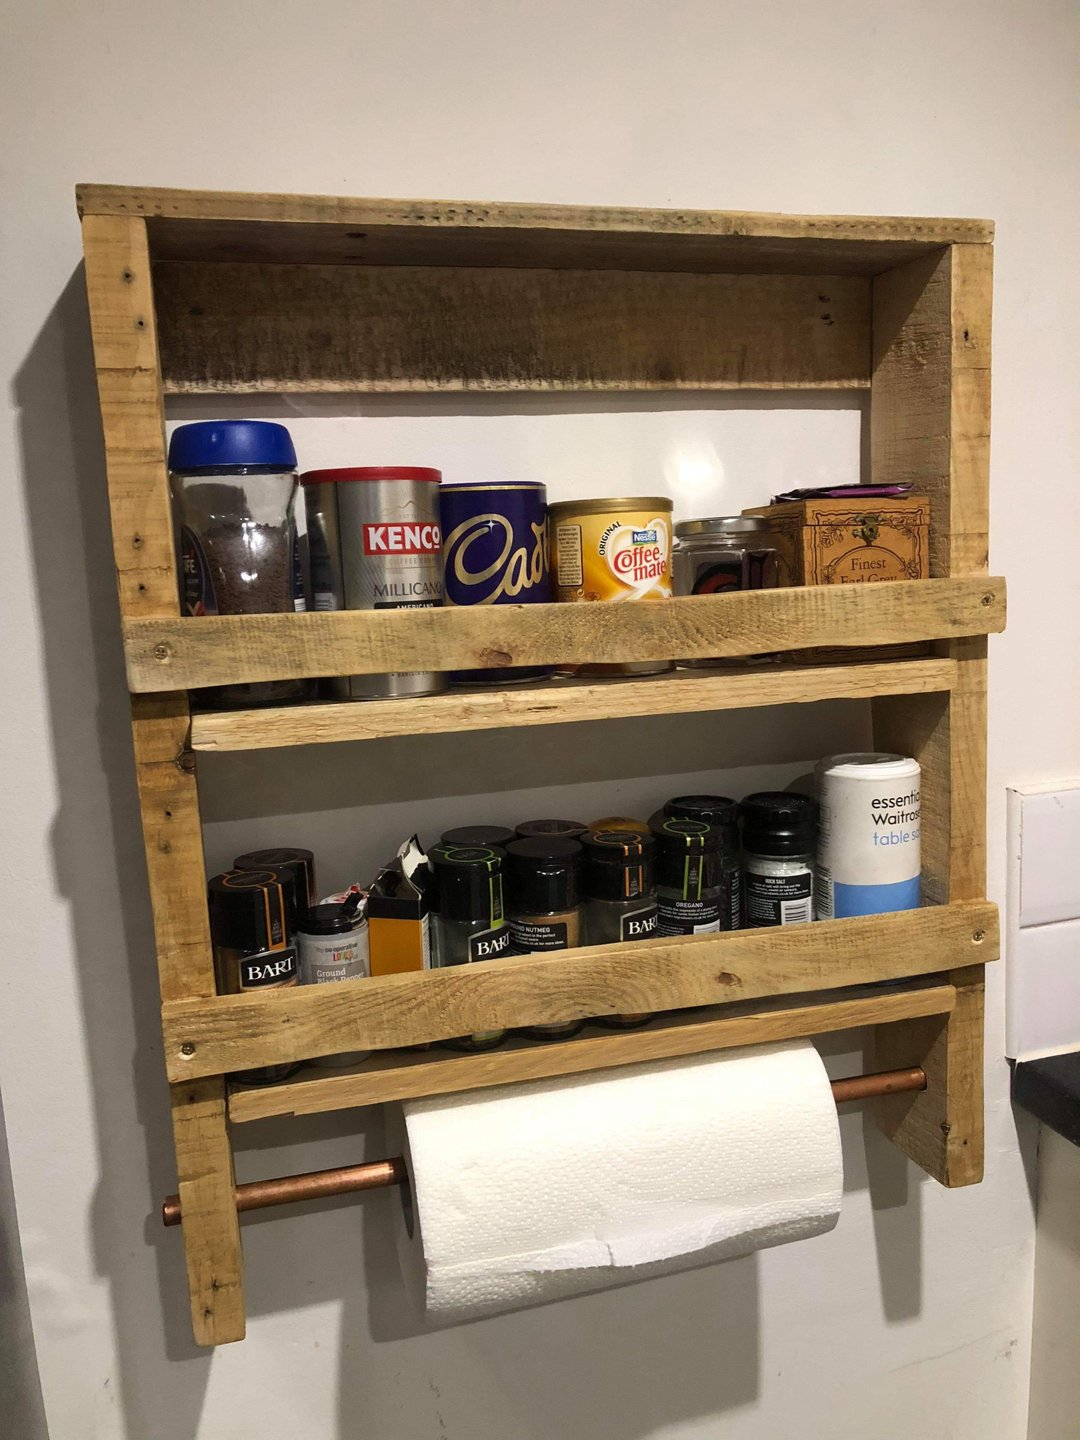 Spice Rack with Kitchen Towel Holder